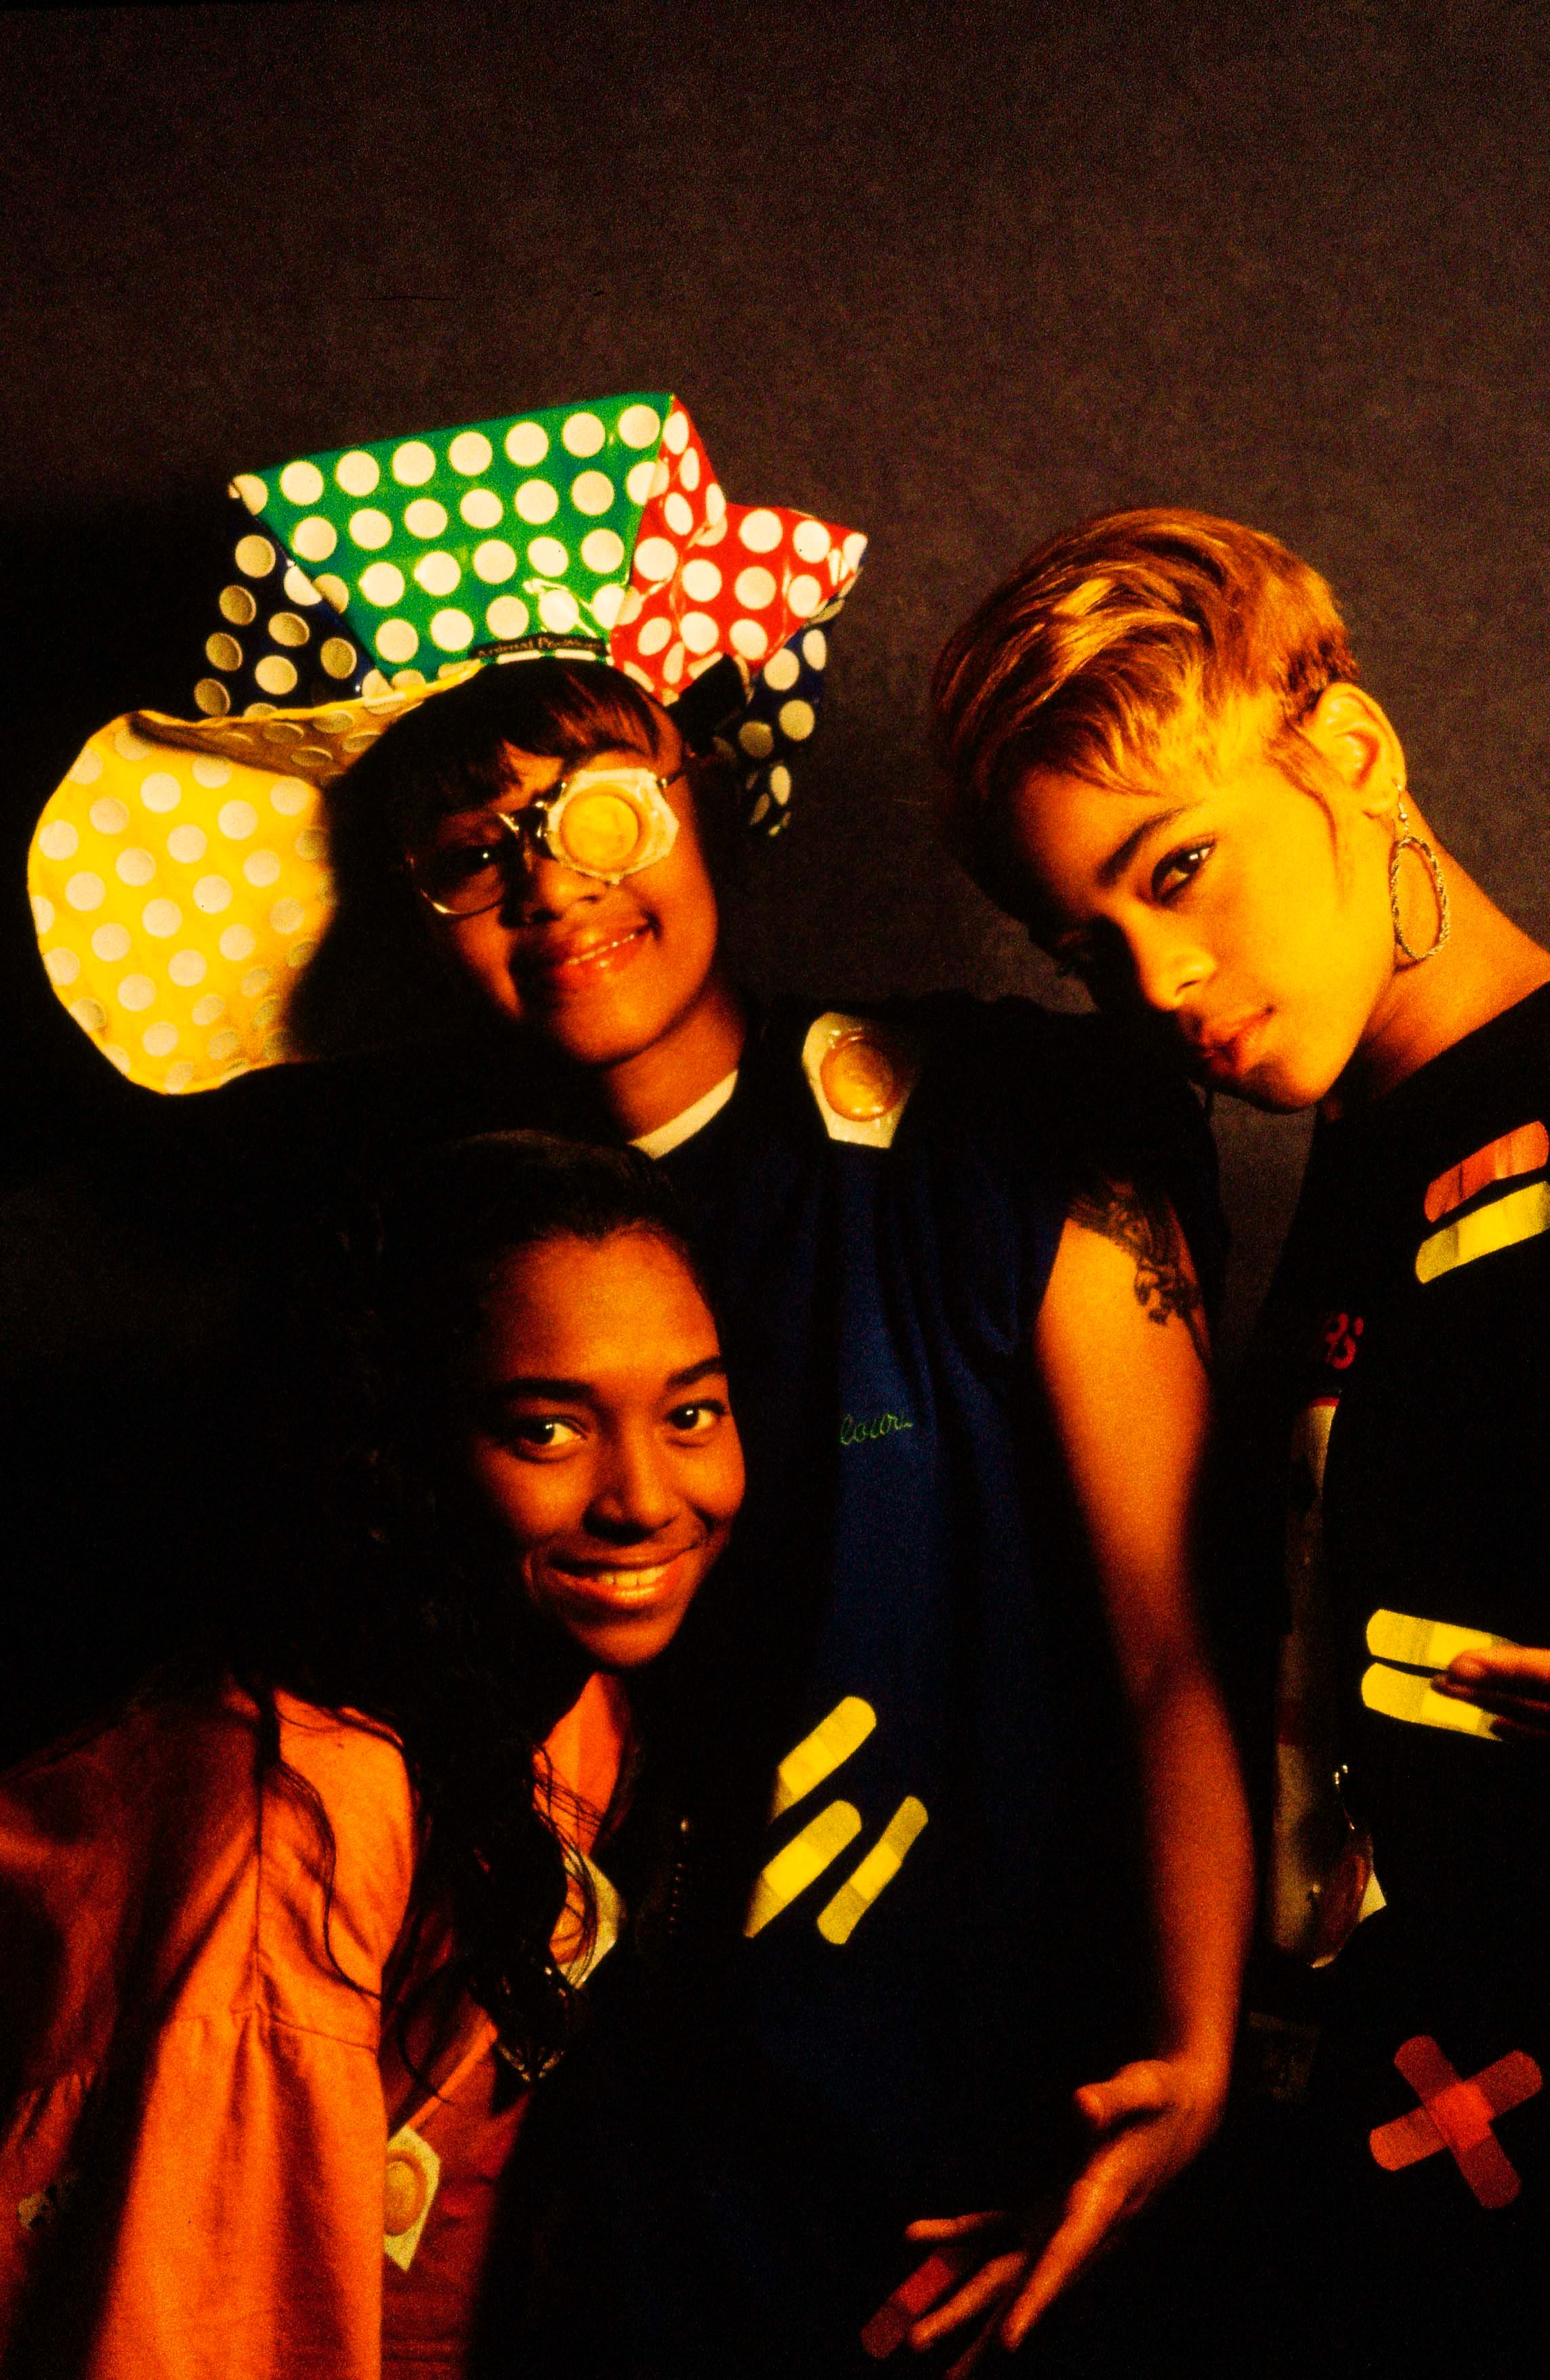 NETHERLANDS - 1st JANUARY: American group TLC (featuring Rozonda 'Chilli' Thomas, Lisa 'Left-Eye' Lopes and Tionne 'T-Boz' Watkins) posed together in The Netherlands in 1992. (Photo by Michel Linssen/Redferns)